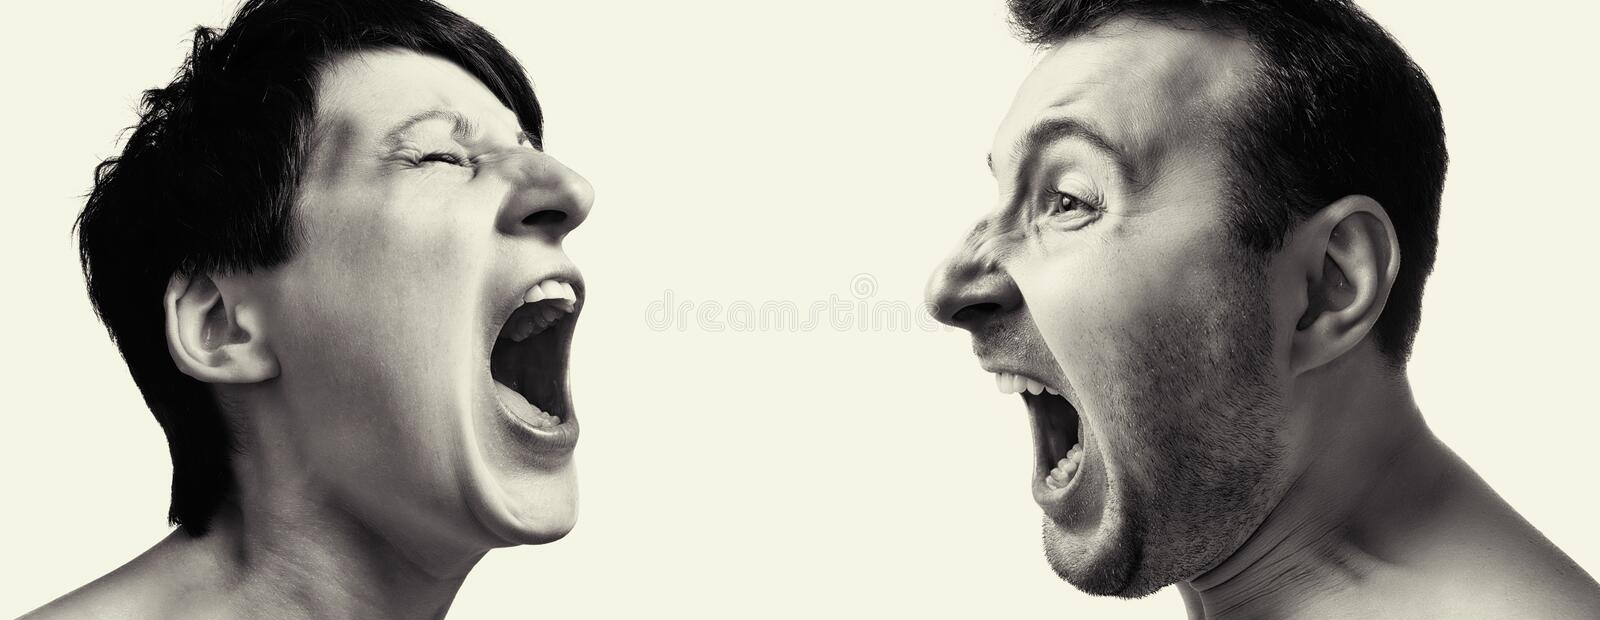 Man and woman yell at each other stock images